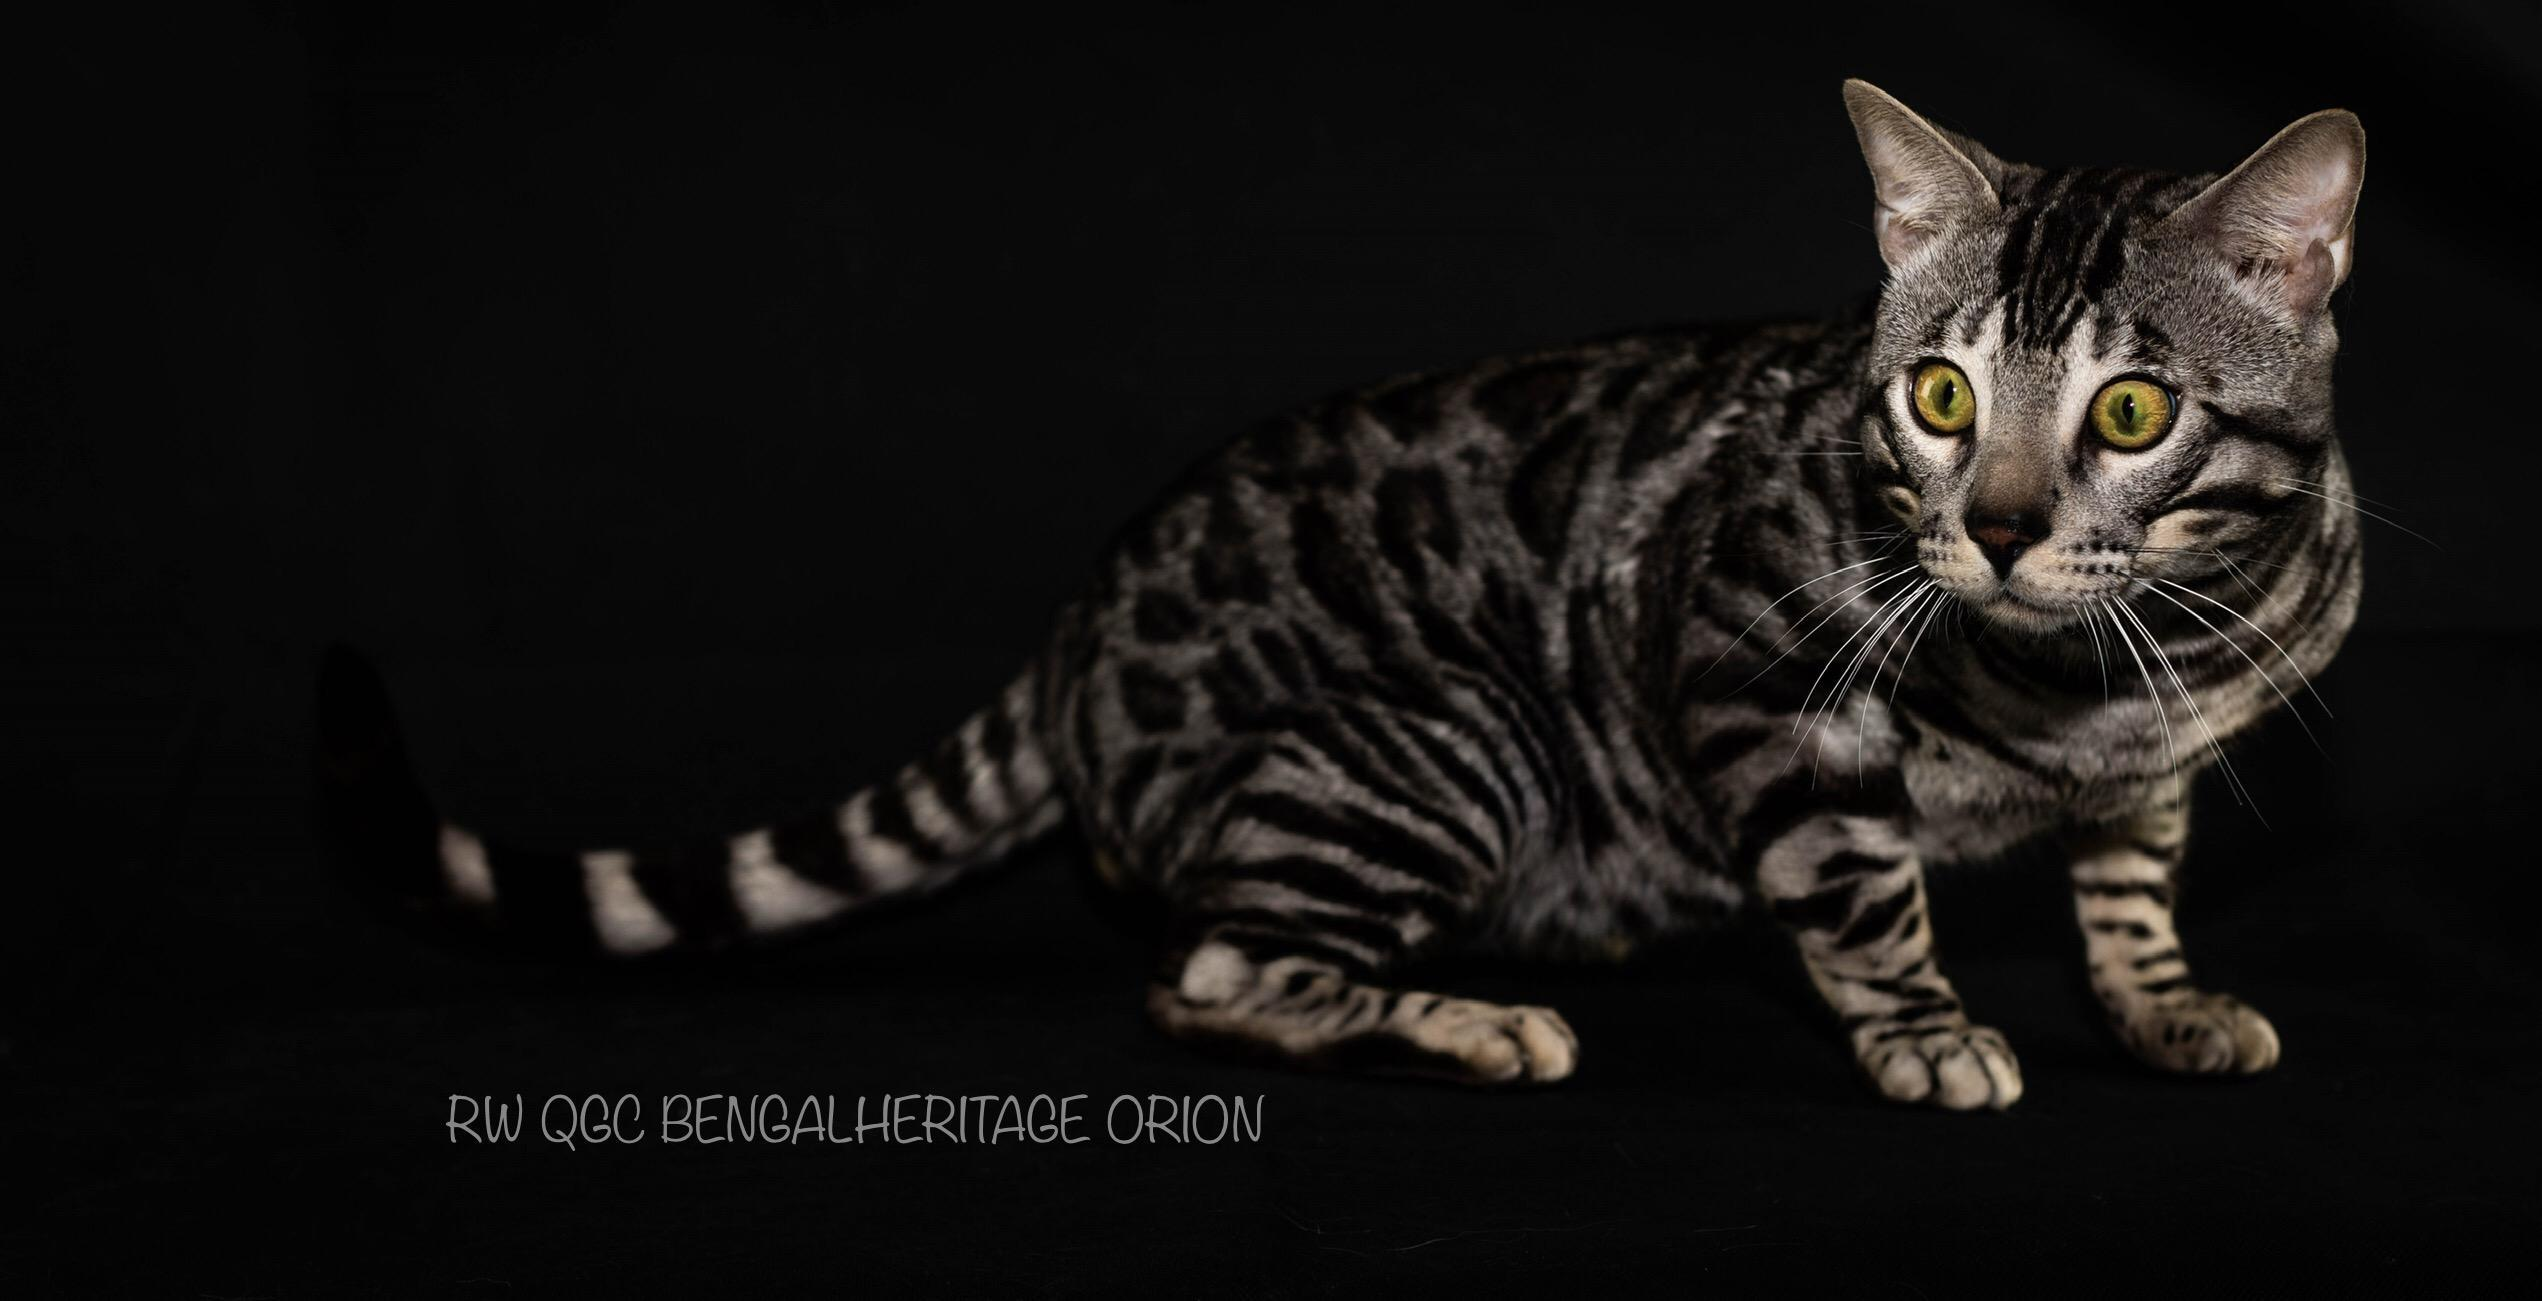 Silver Bengal Cat; Bengalheritage Cats; RW QGC Bengalheritage Orion; Silver Bengals; Silver Bengal Kitten and Cats for Sale;https://bengalheritagecats.co.uk/kittens